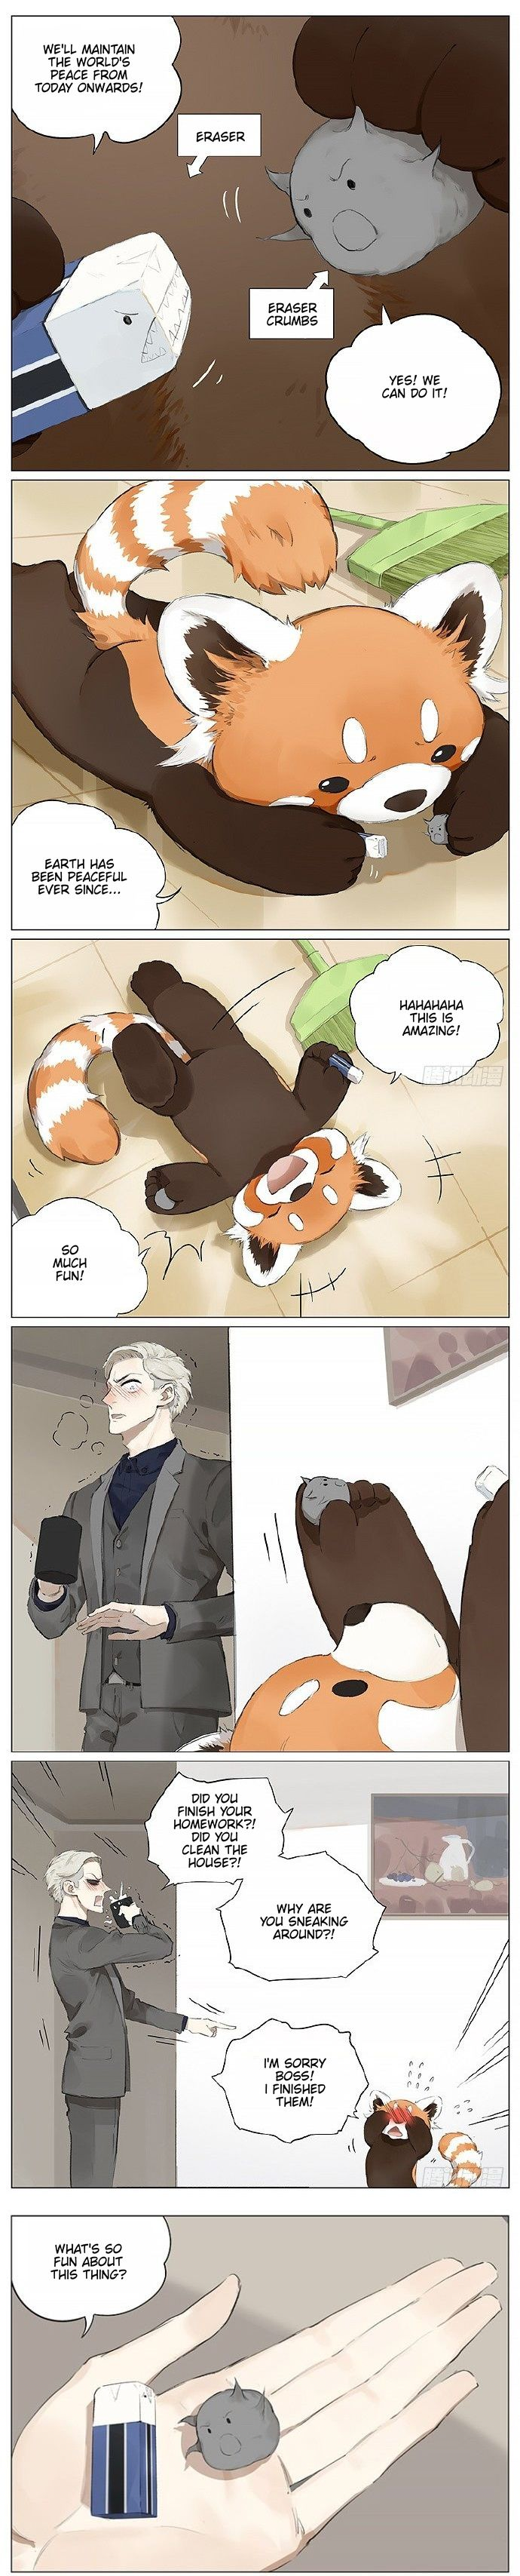 Please Call Me Red Panda - chapter 11 - #2